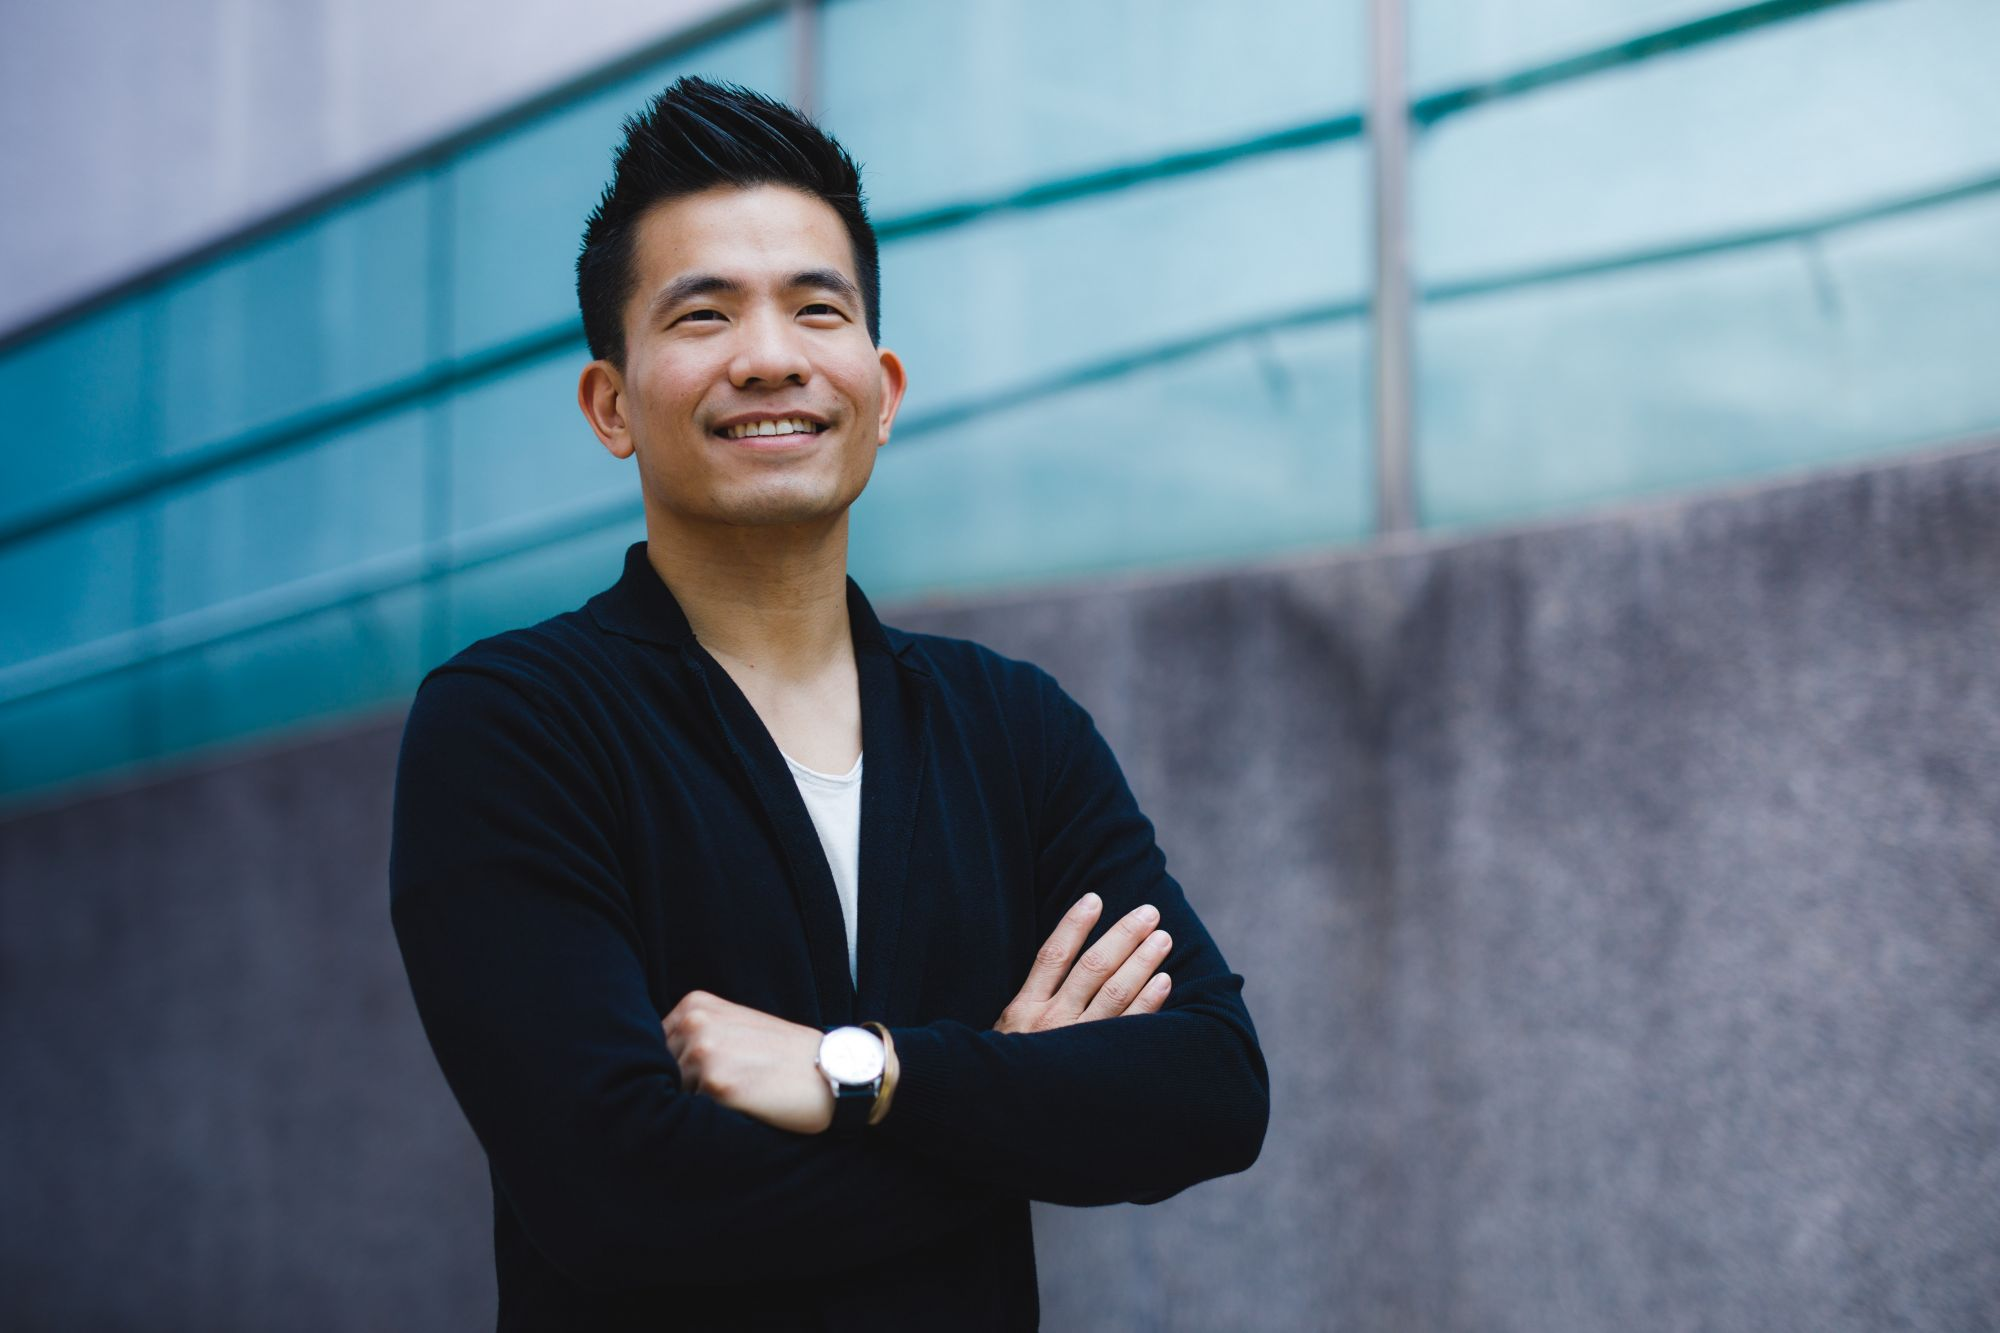 500 Startups' Khailee Ng On Achieving Clarity & Balance With A Plant-Based Diet